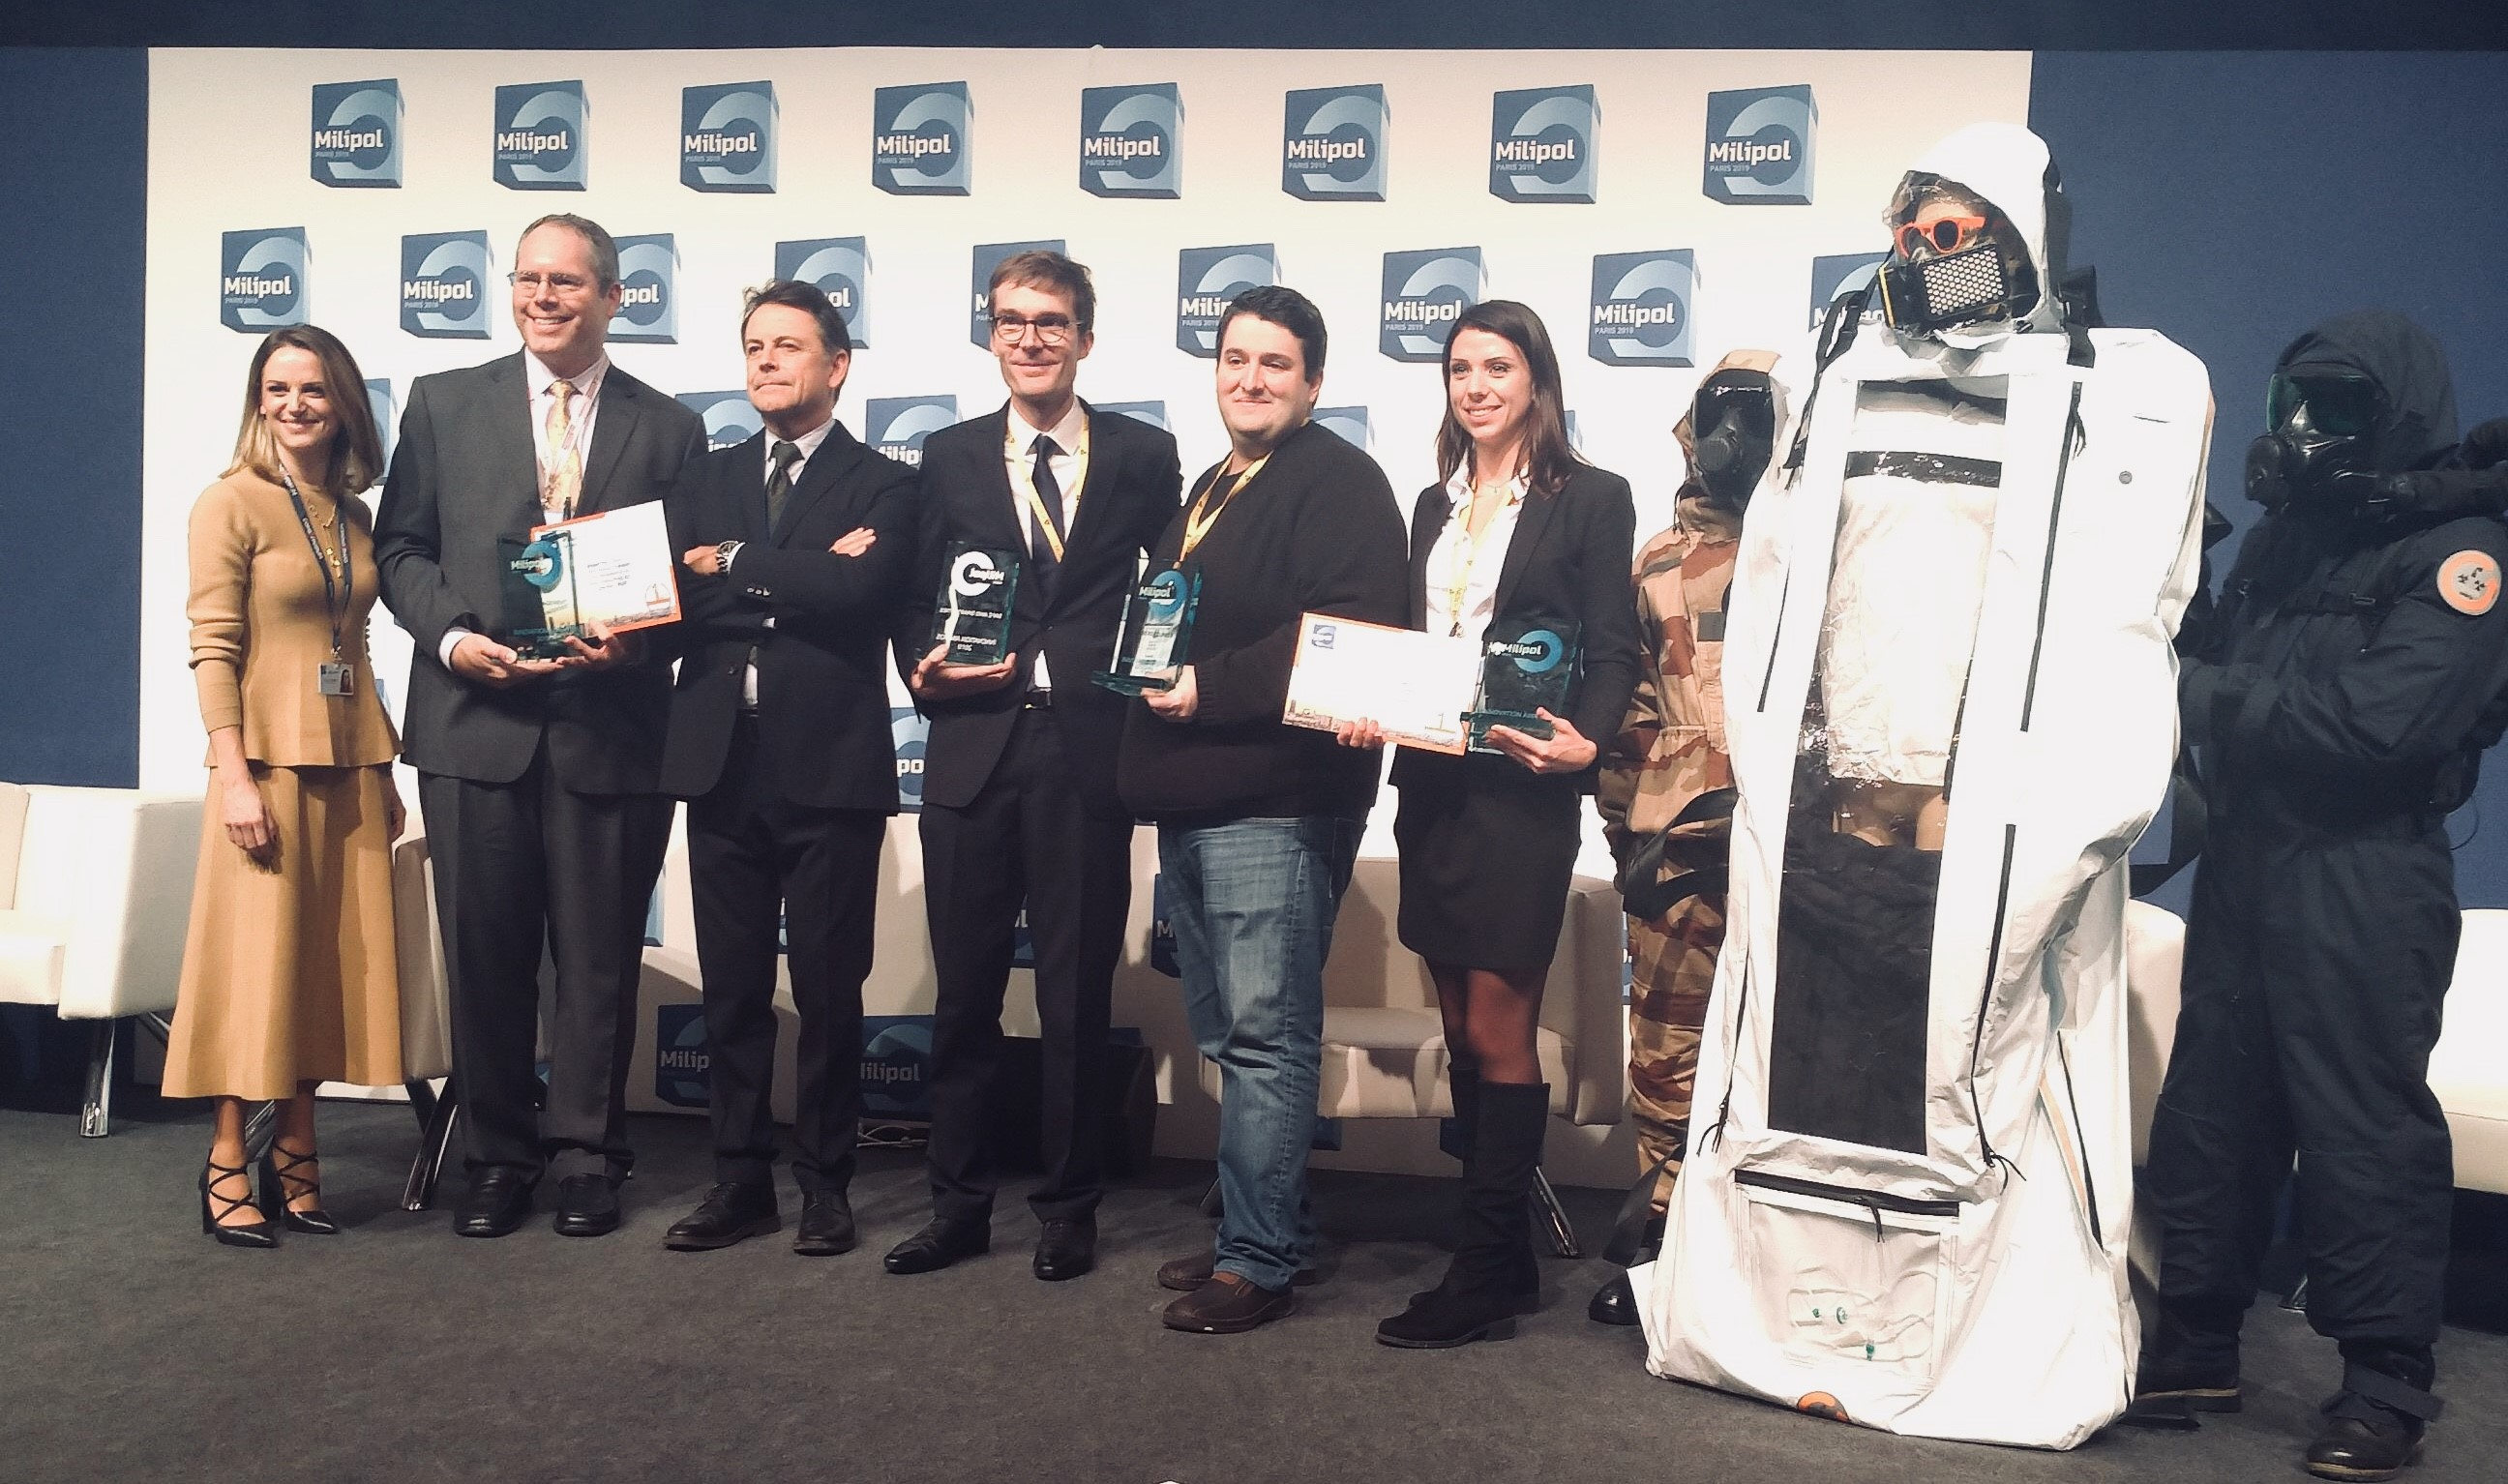 Sac d'extraction de victime contaminée NRBC OUVRY_MILIPOL INNOVATION AWARD 2019 (3)